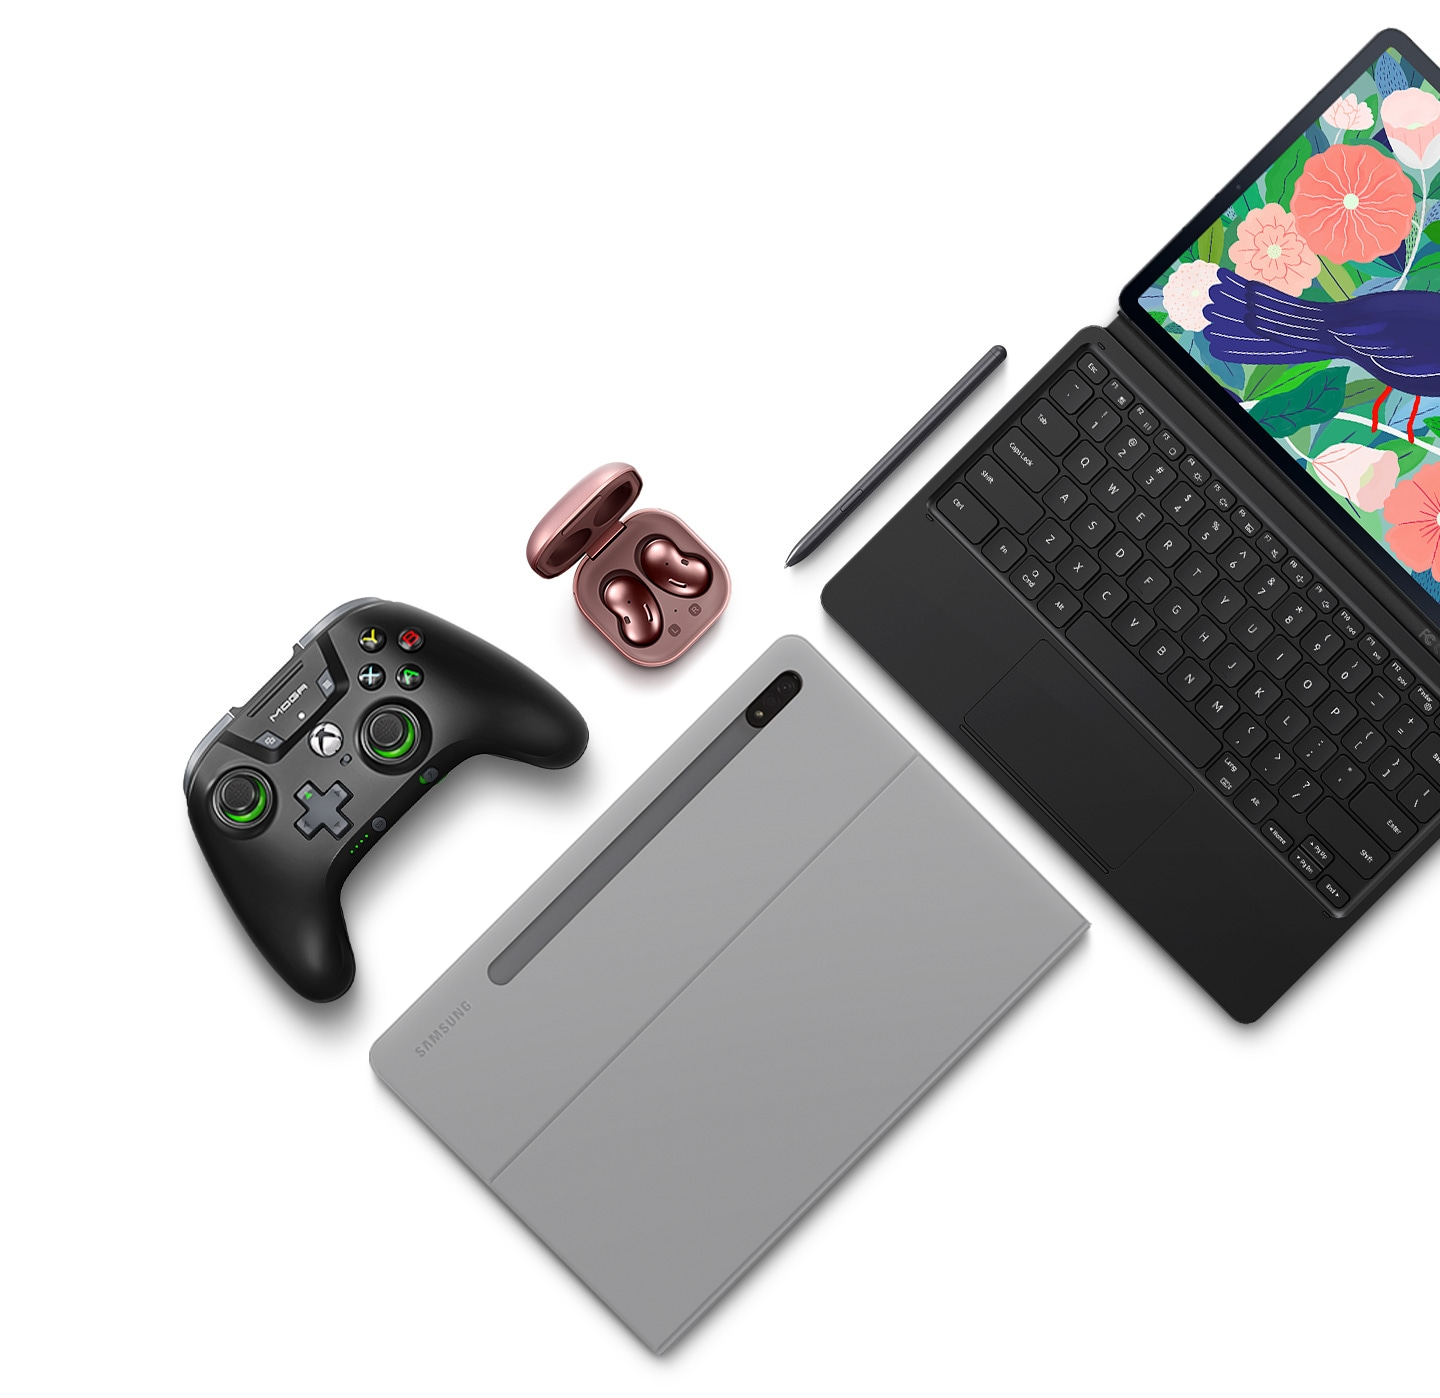 Flat lay of Galaxy Tab S7+ and its accessories. A Galaxy Tab S7+ attached to the BookCover Keyboard, a Galaxy Tab S7+ inside the BookCover, S Pen, game controller, and Galaxy Buds Live